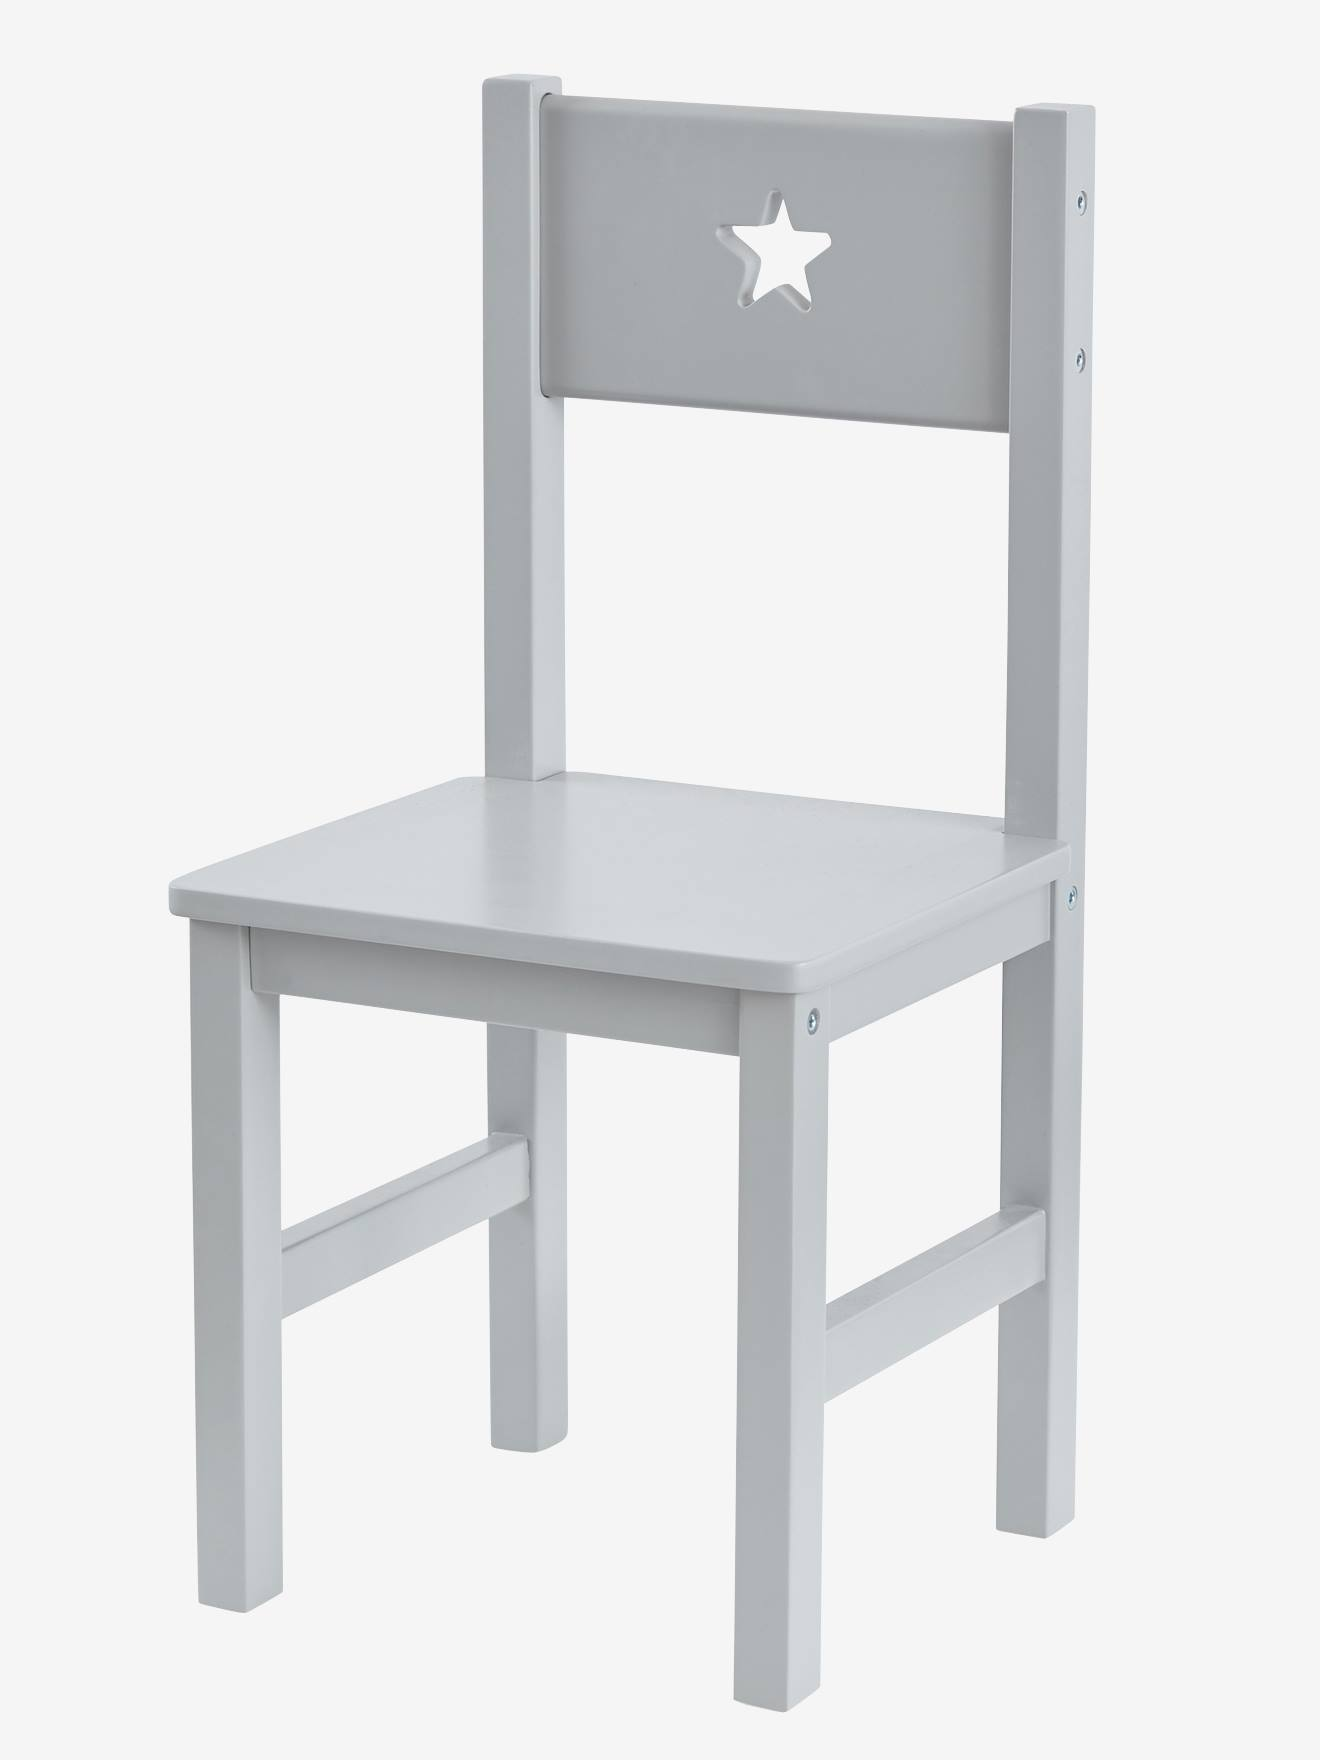 Chaise maternelle, assise H. 30 cm LIGNE SIRIUS gris